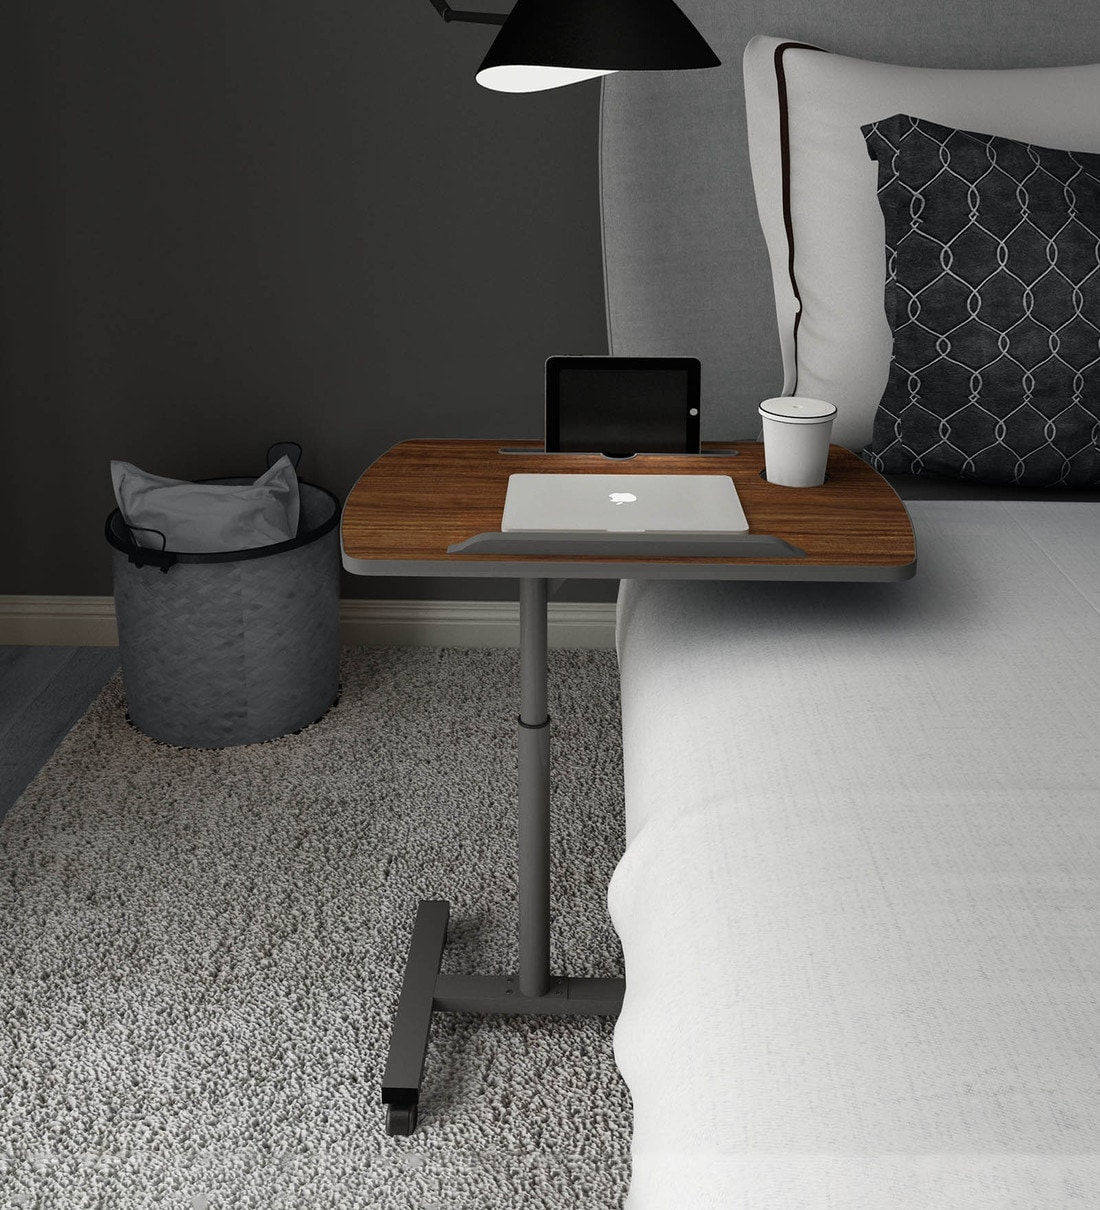 livenza laptop table with adjustable height in walnut finish